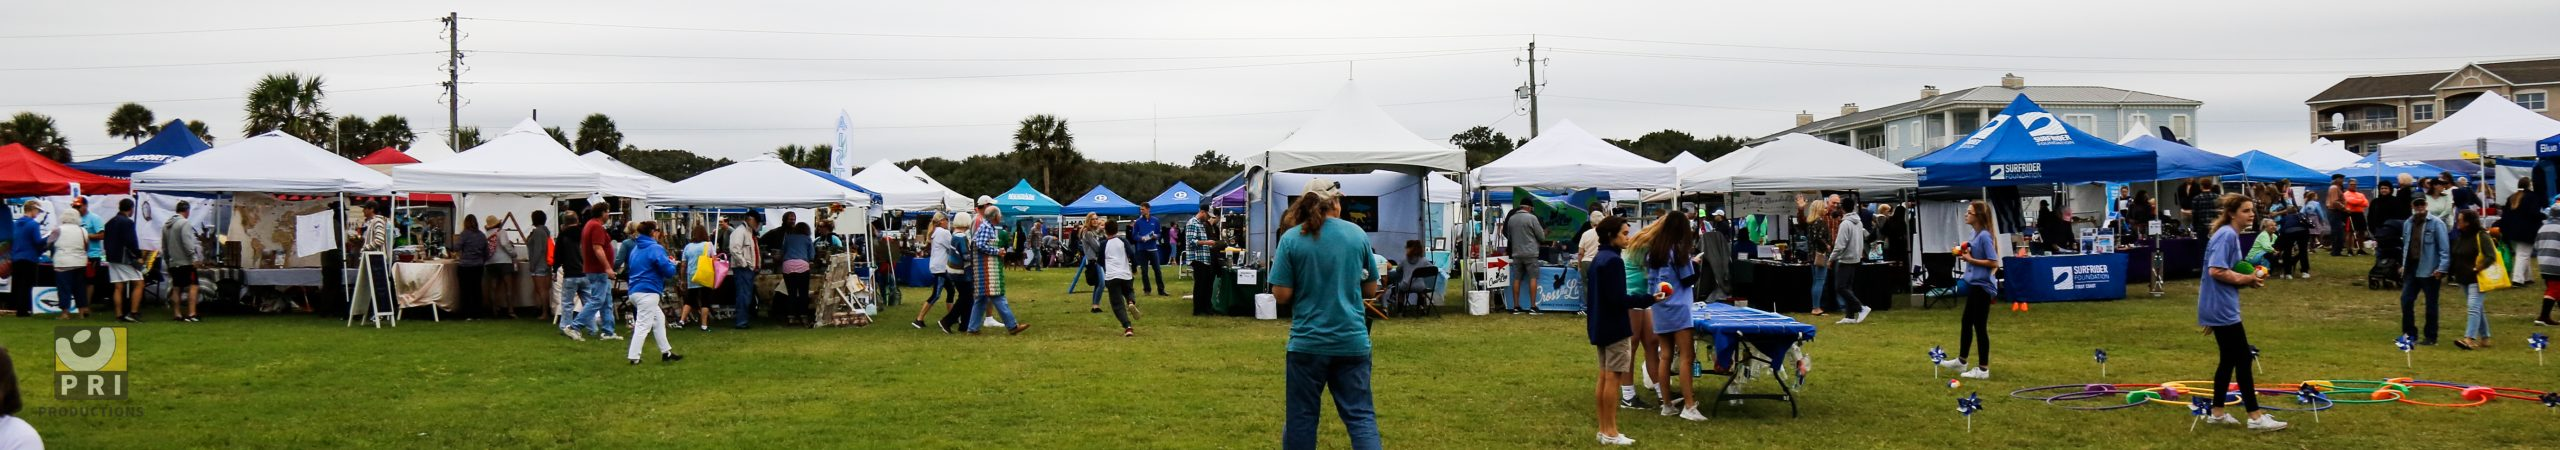 Right Whale Festival 2019